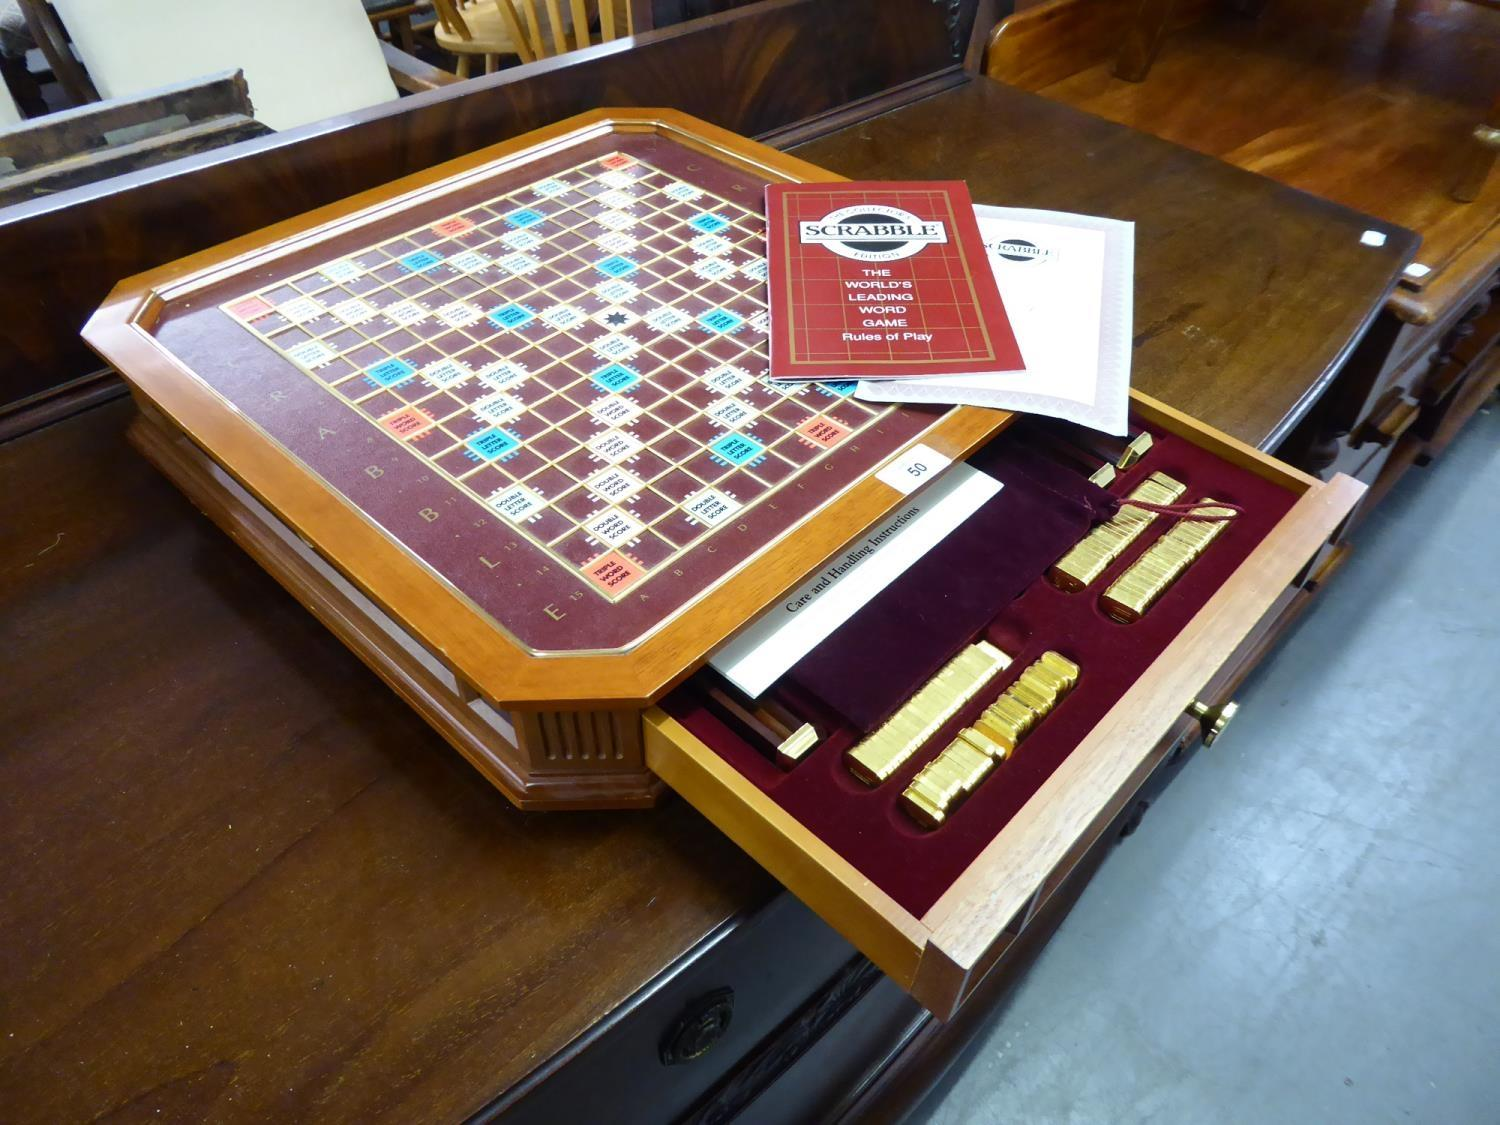 A DELUXE SCRABBLE COLLECTORS EDITION BOARD GAME, COMPLETE WITH 22CT GOLD PLATED LETTER TILES AND